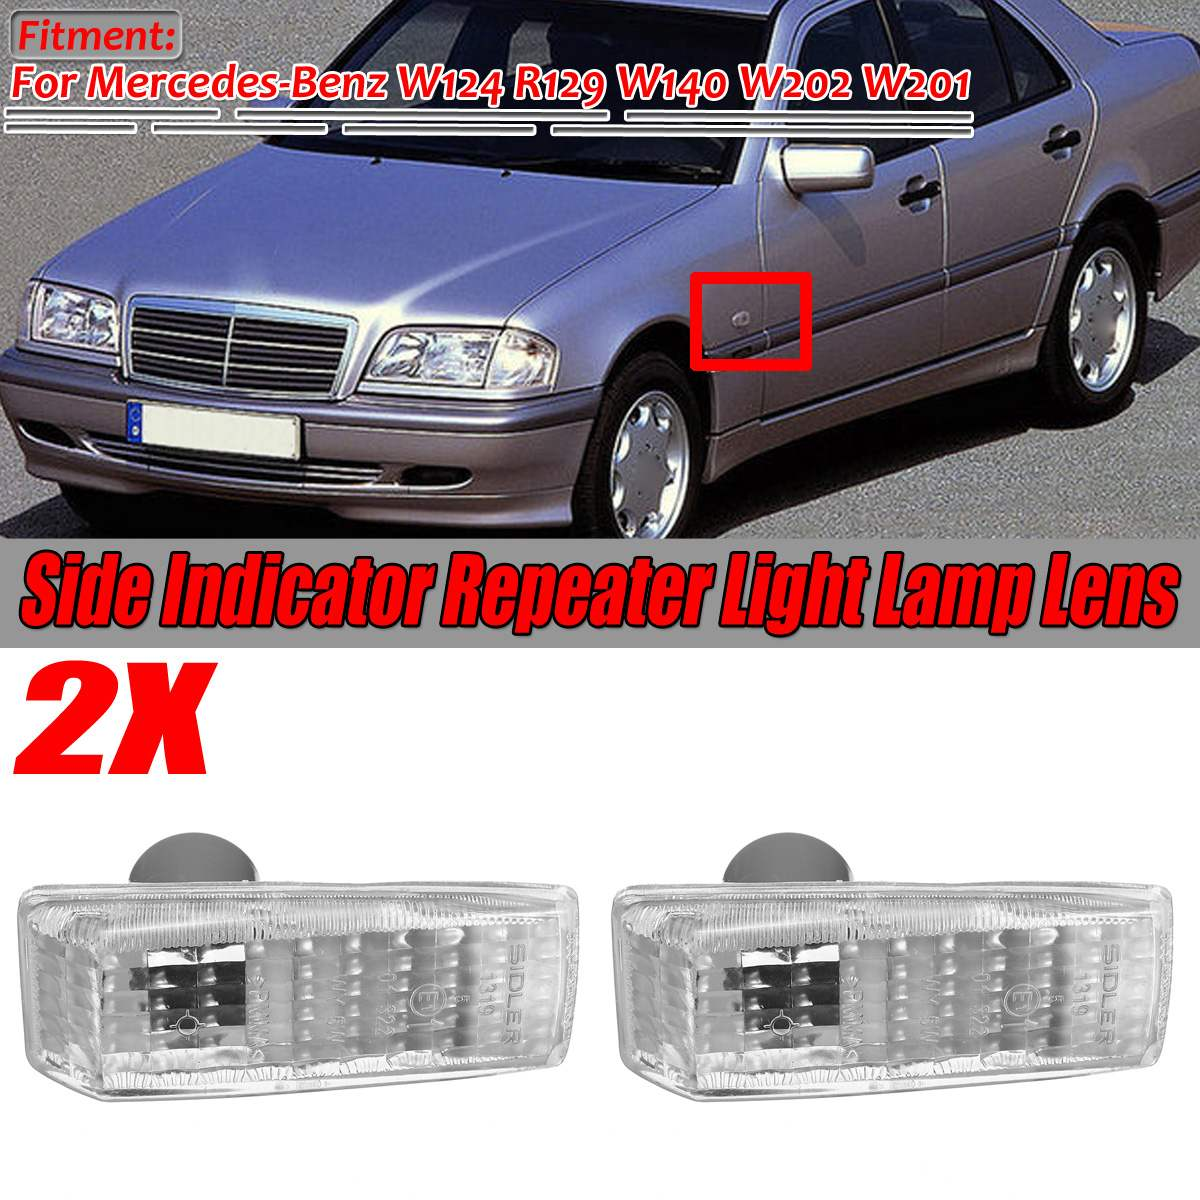 1 Pair Car Side Marker Light Cover Indicator Repeater Light Lamp Lens Co Ver Trim For Mercedes For Benz W124 R129 W140 W202 W201